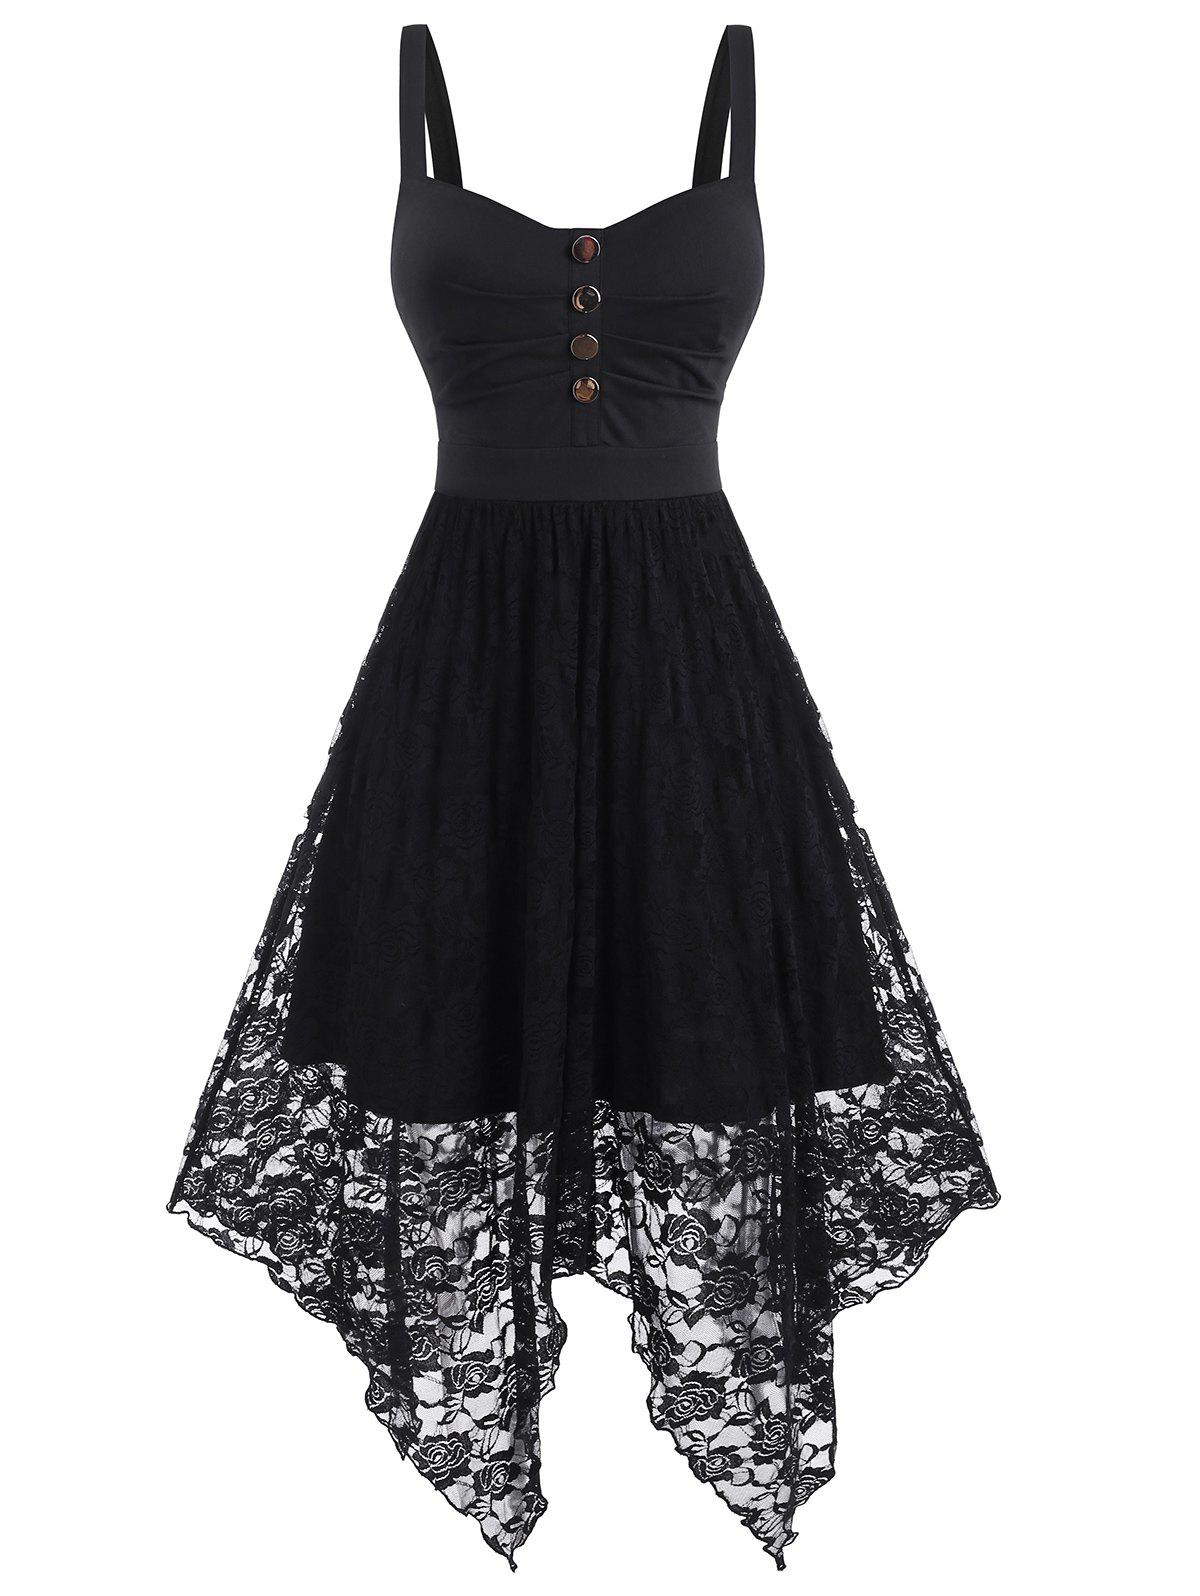 Unique Sleeveless Button Ruched Flower Lace Hanky Hem Dress